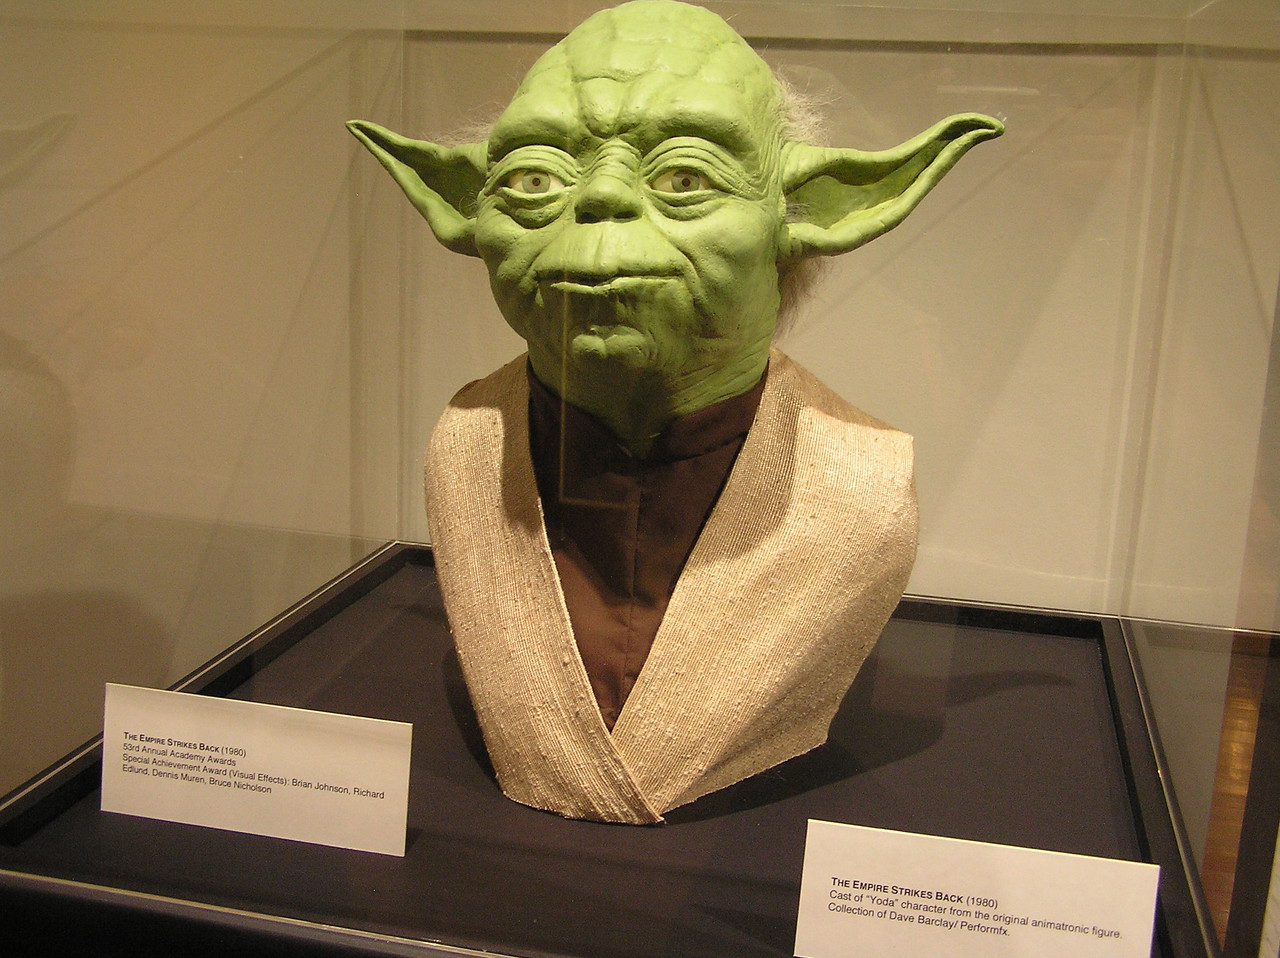 Unfortunately, this was just a cast of Yoda